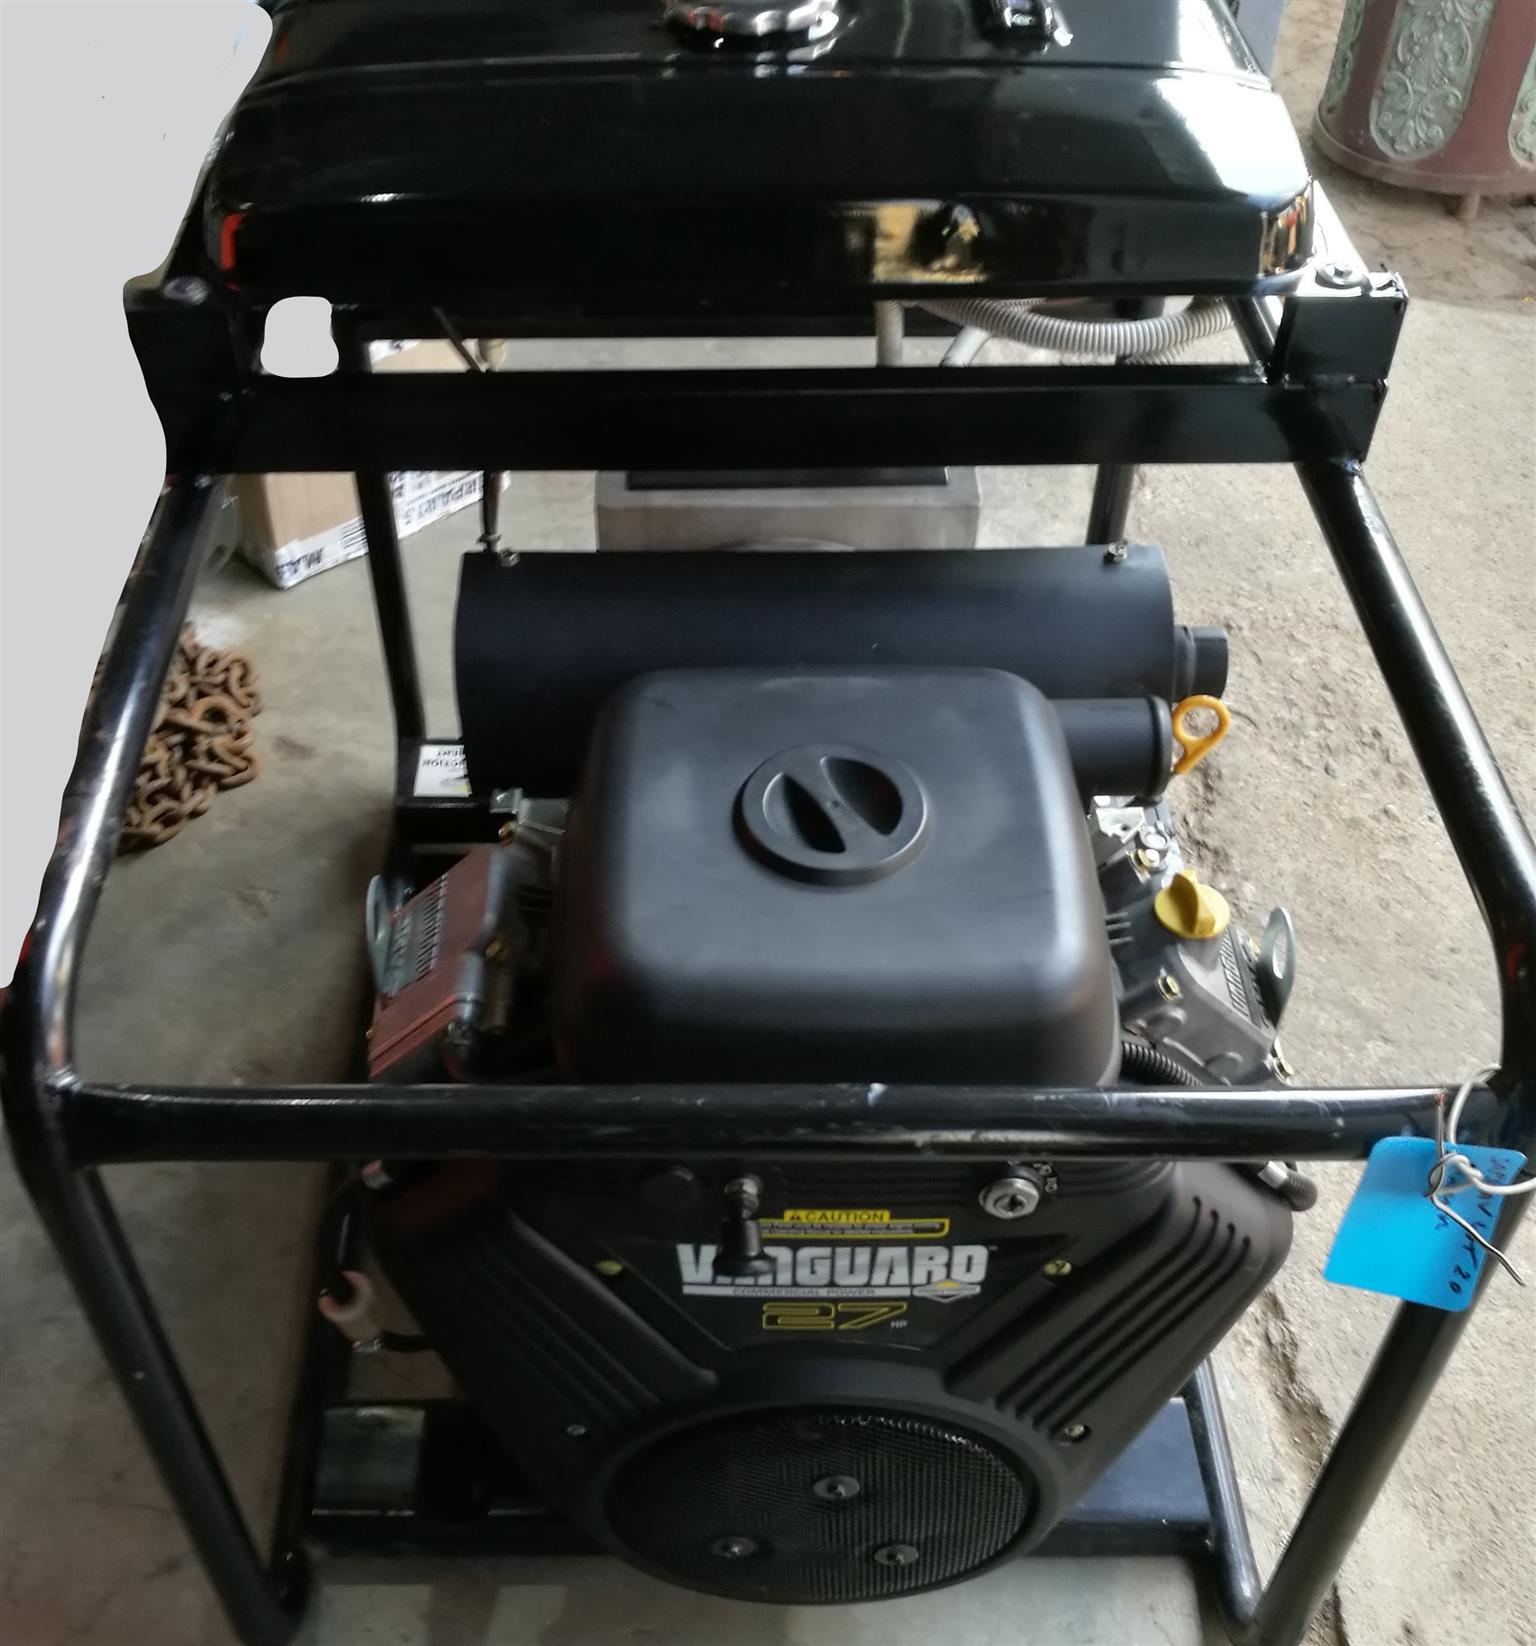 Briggs and Stratton 27HP 15 kva generator  Single phase  Petrol  Vanguard  Japannese built engine  Excellent cond